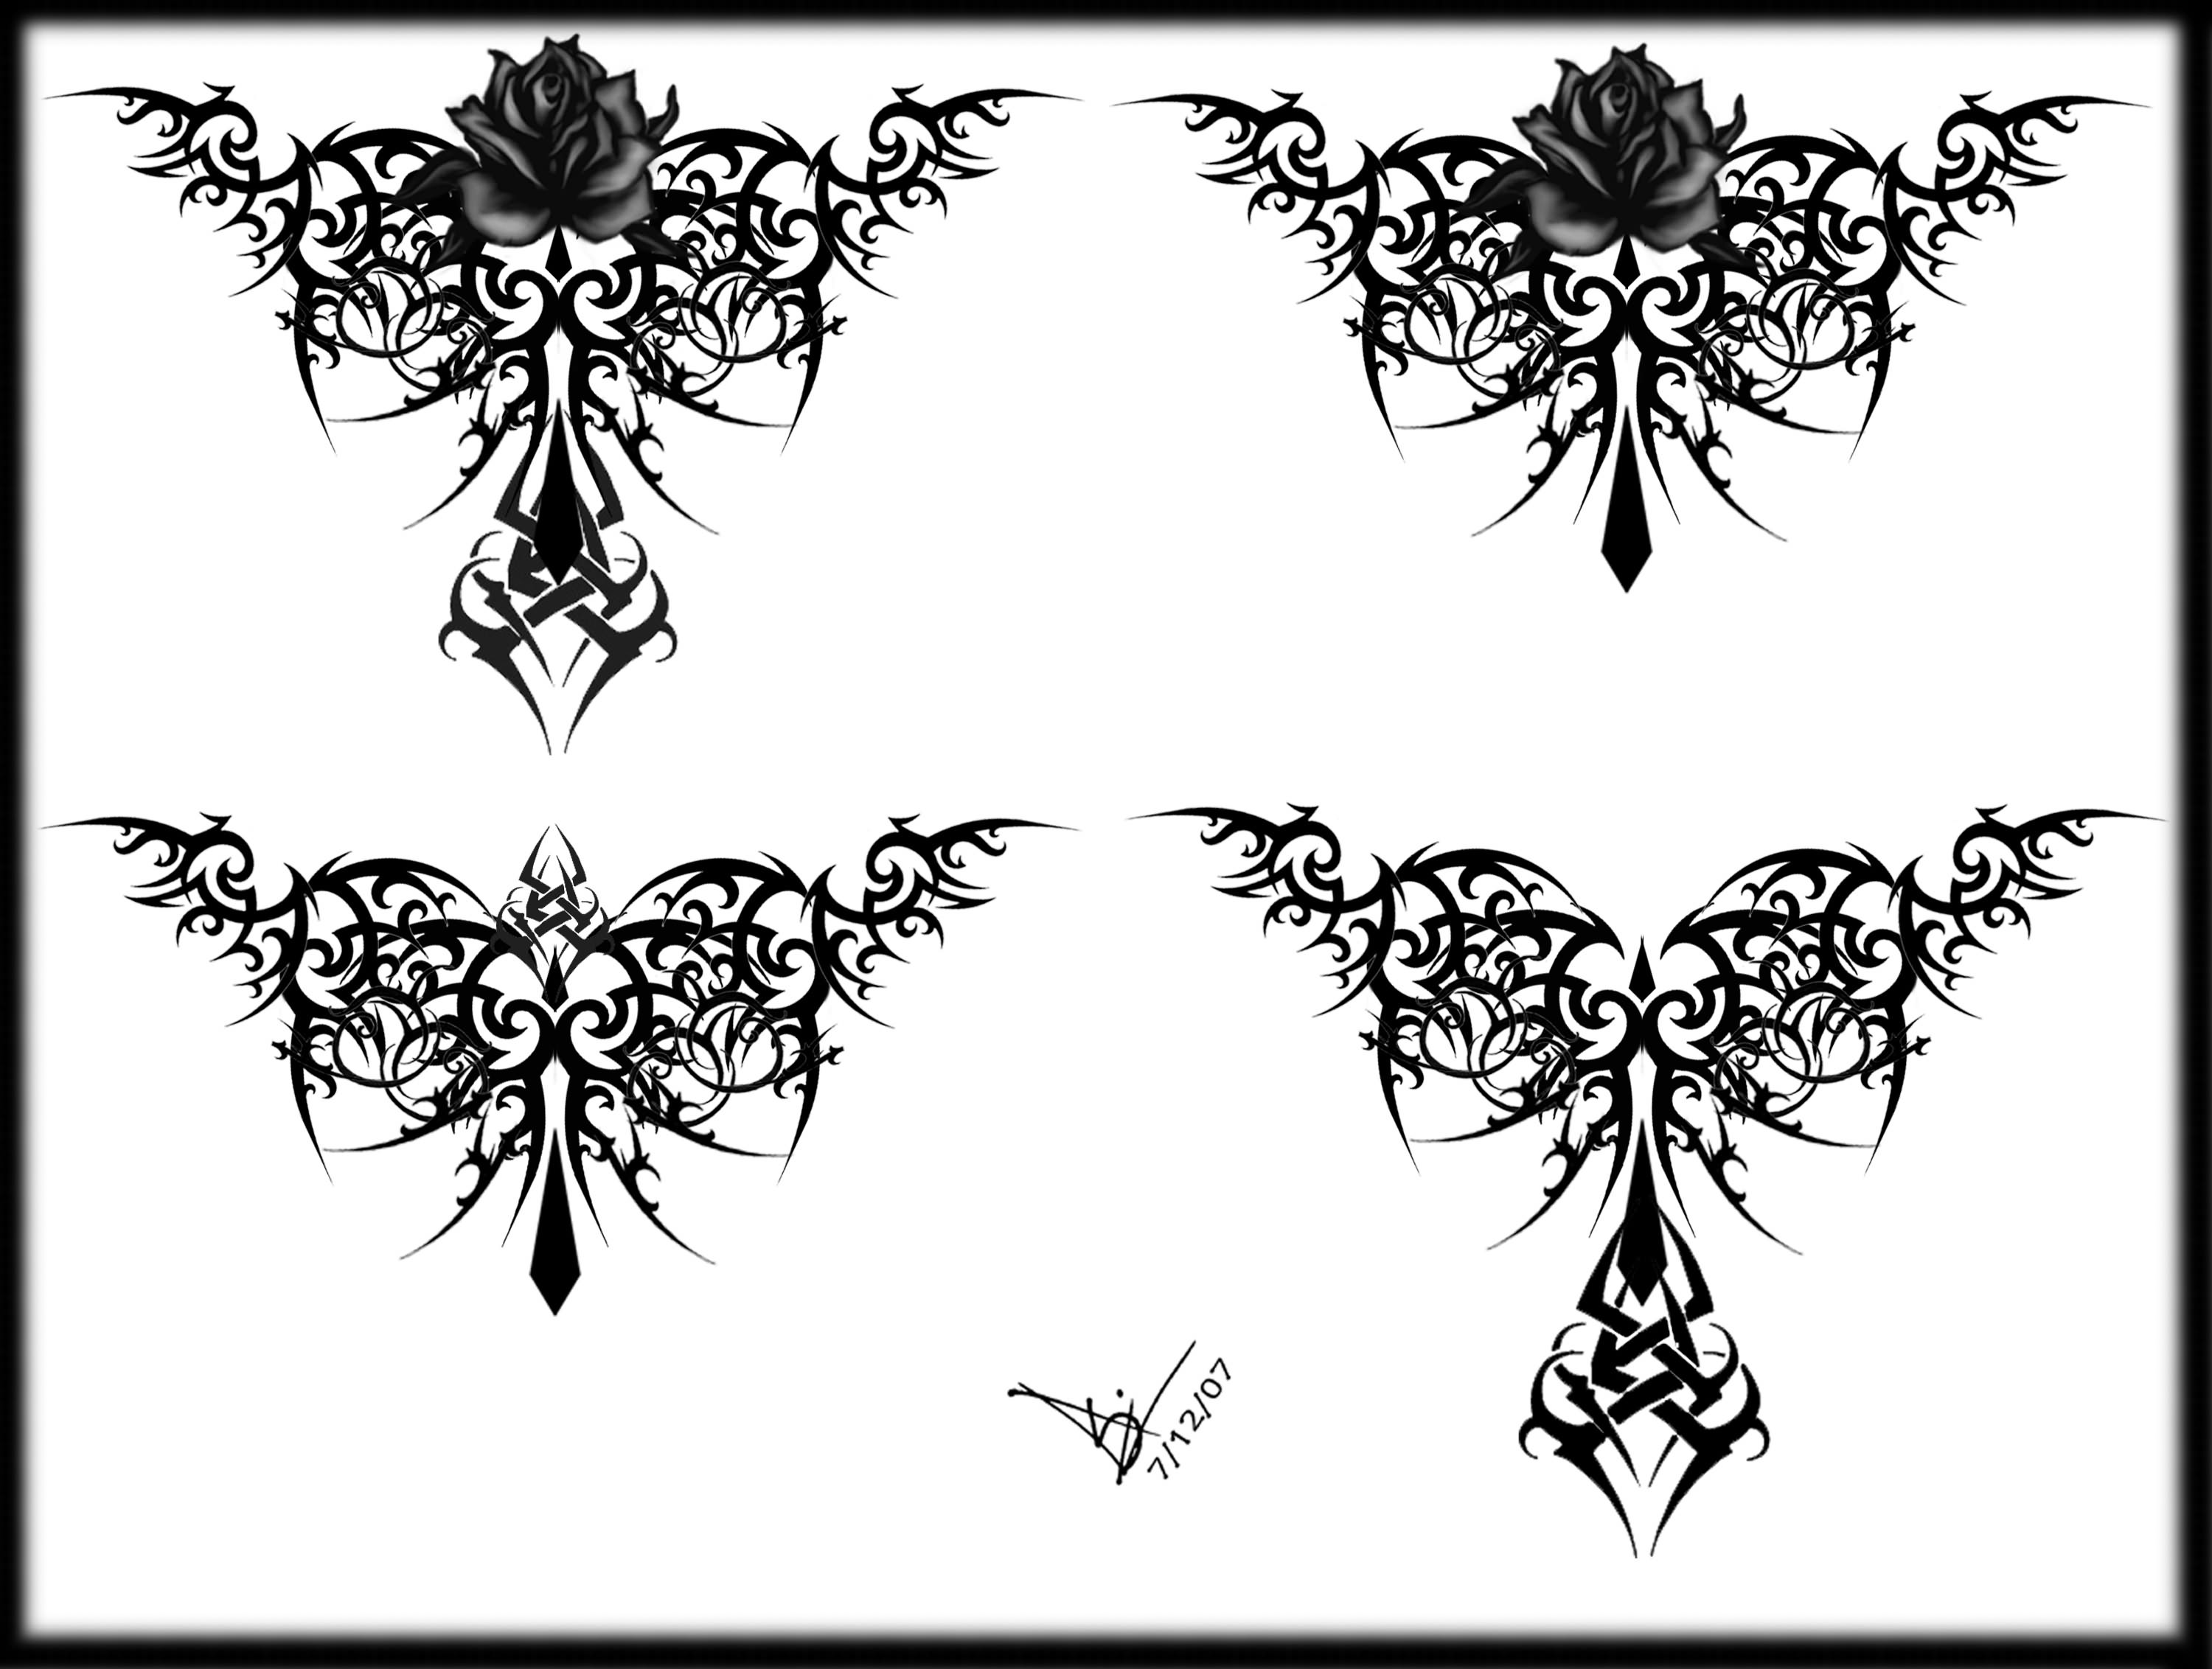 Gothic Heart Tattoos Gothic tattoos designs